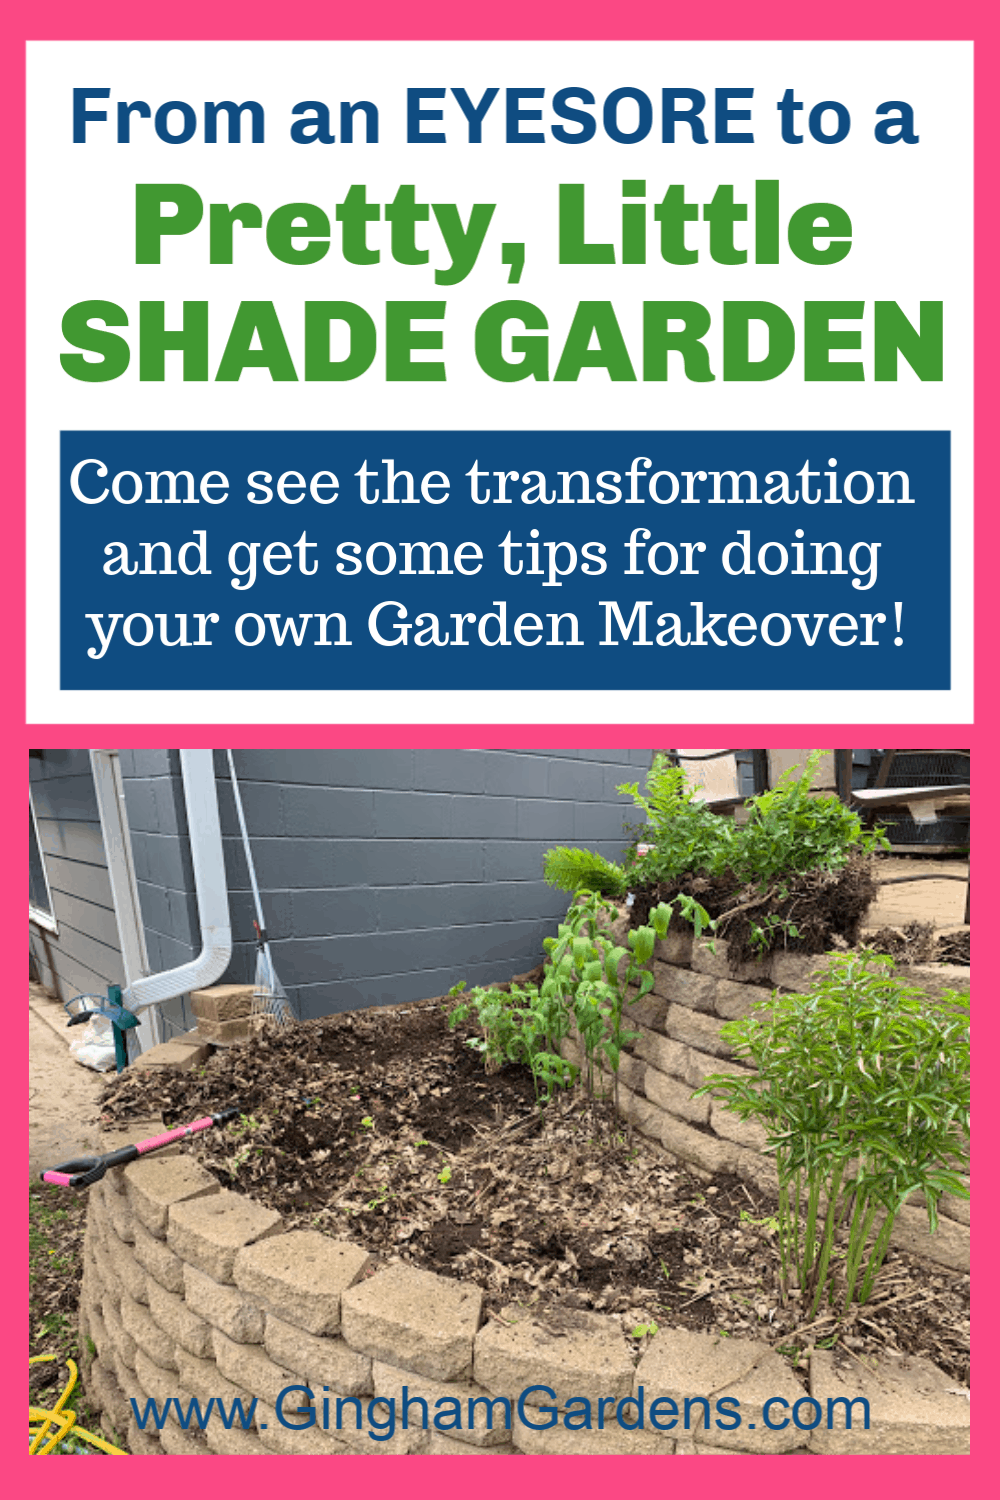 Image of Ugly Garden with text overlay - From an eyesore to a pretty, little shade garden